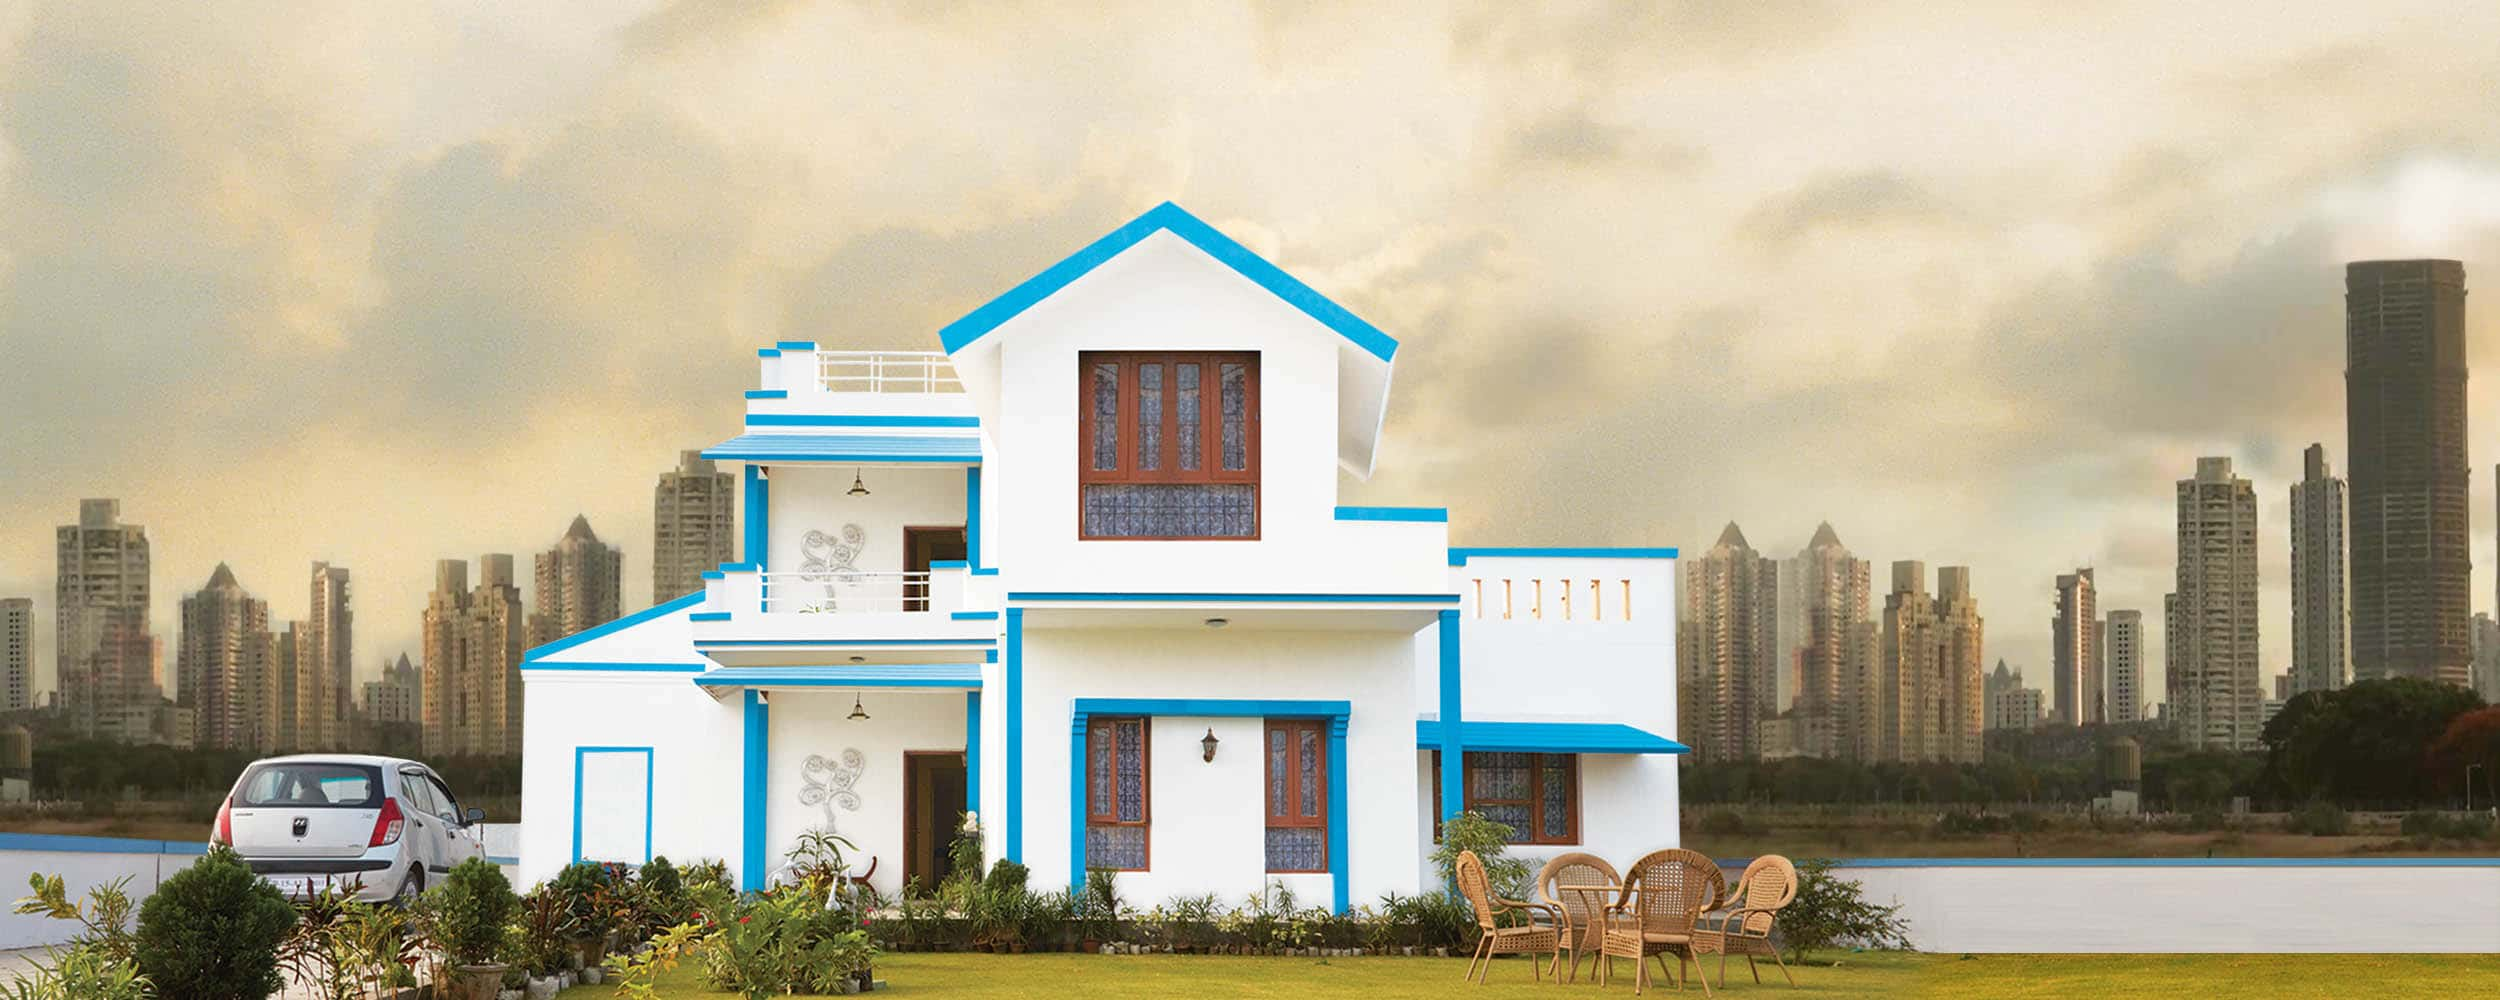 Wall Paints Home Wall Painting Colour Waterproofing Solutions Berger Paints